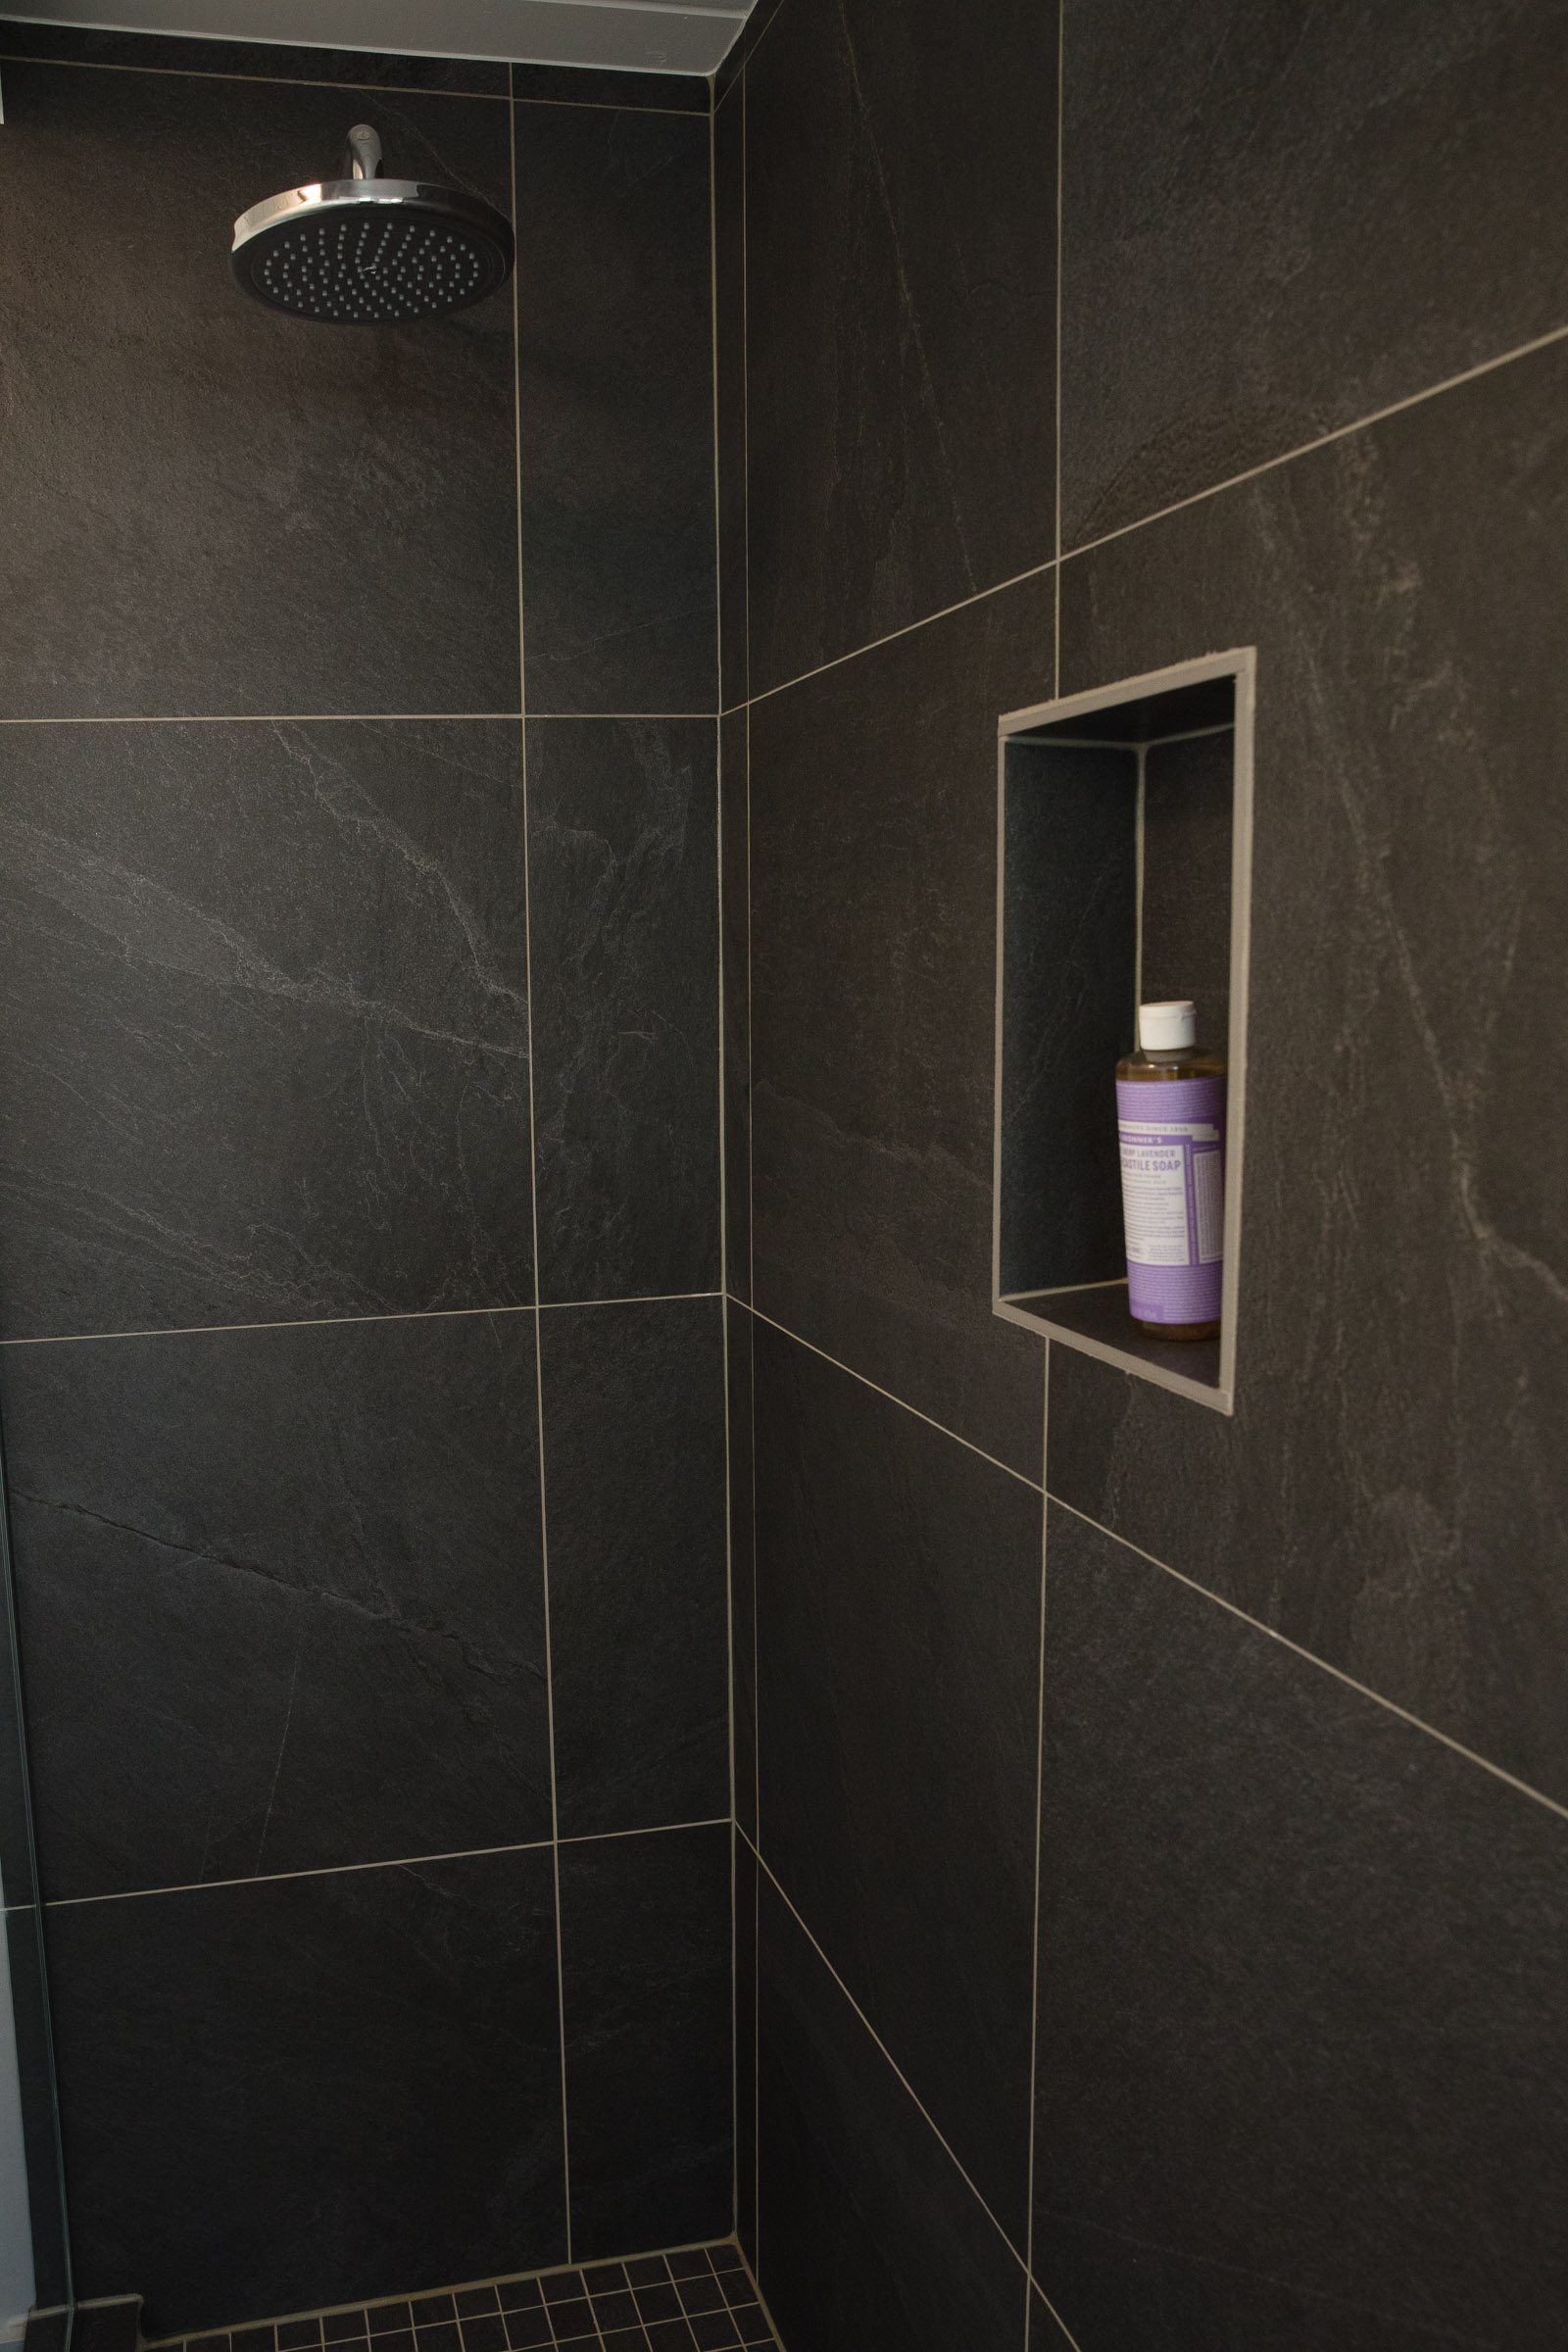 The main bathroom as a walk-in glass shower and in-floor radiant heat.